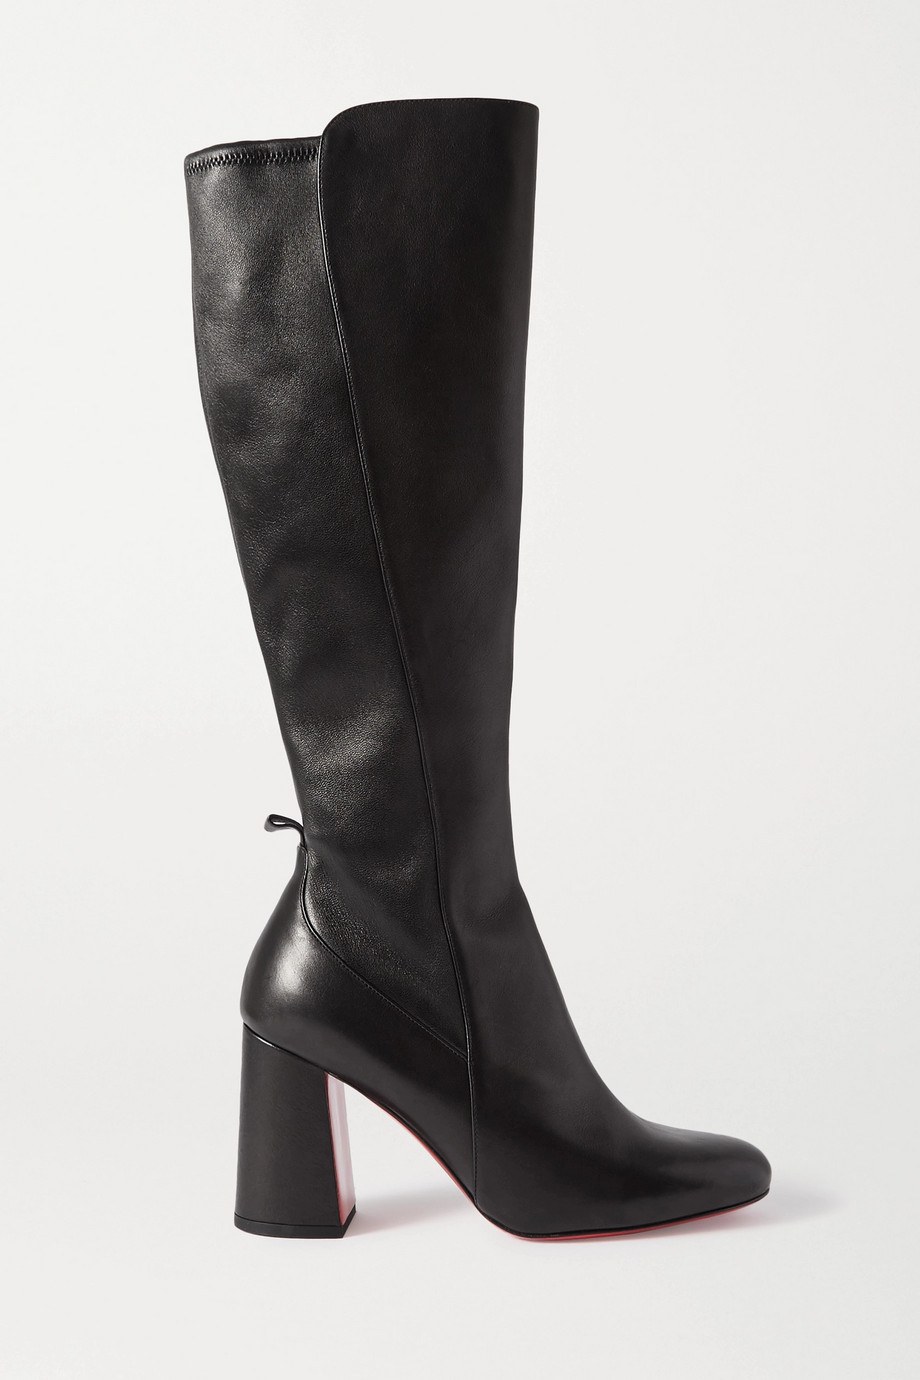 Christian Louboutin Kronobotte 85 leather knee boots